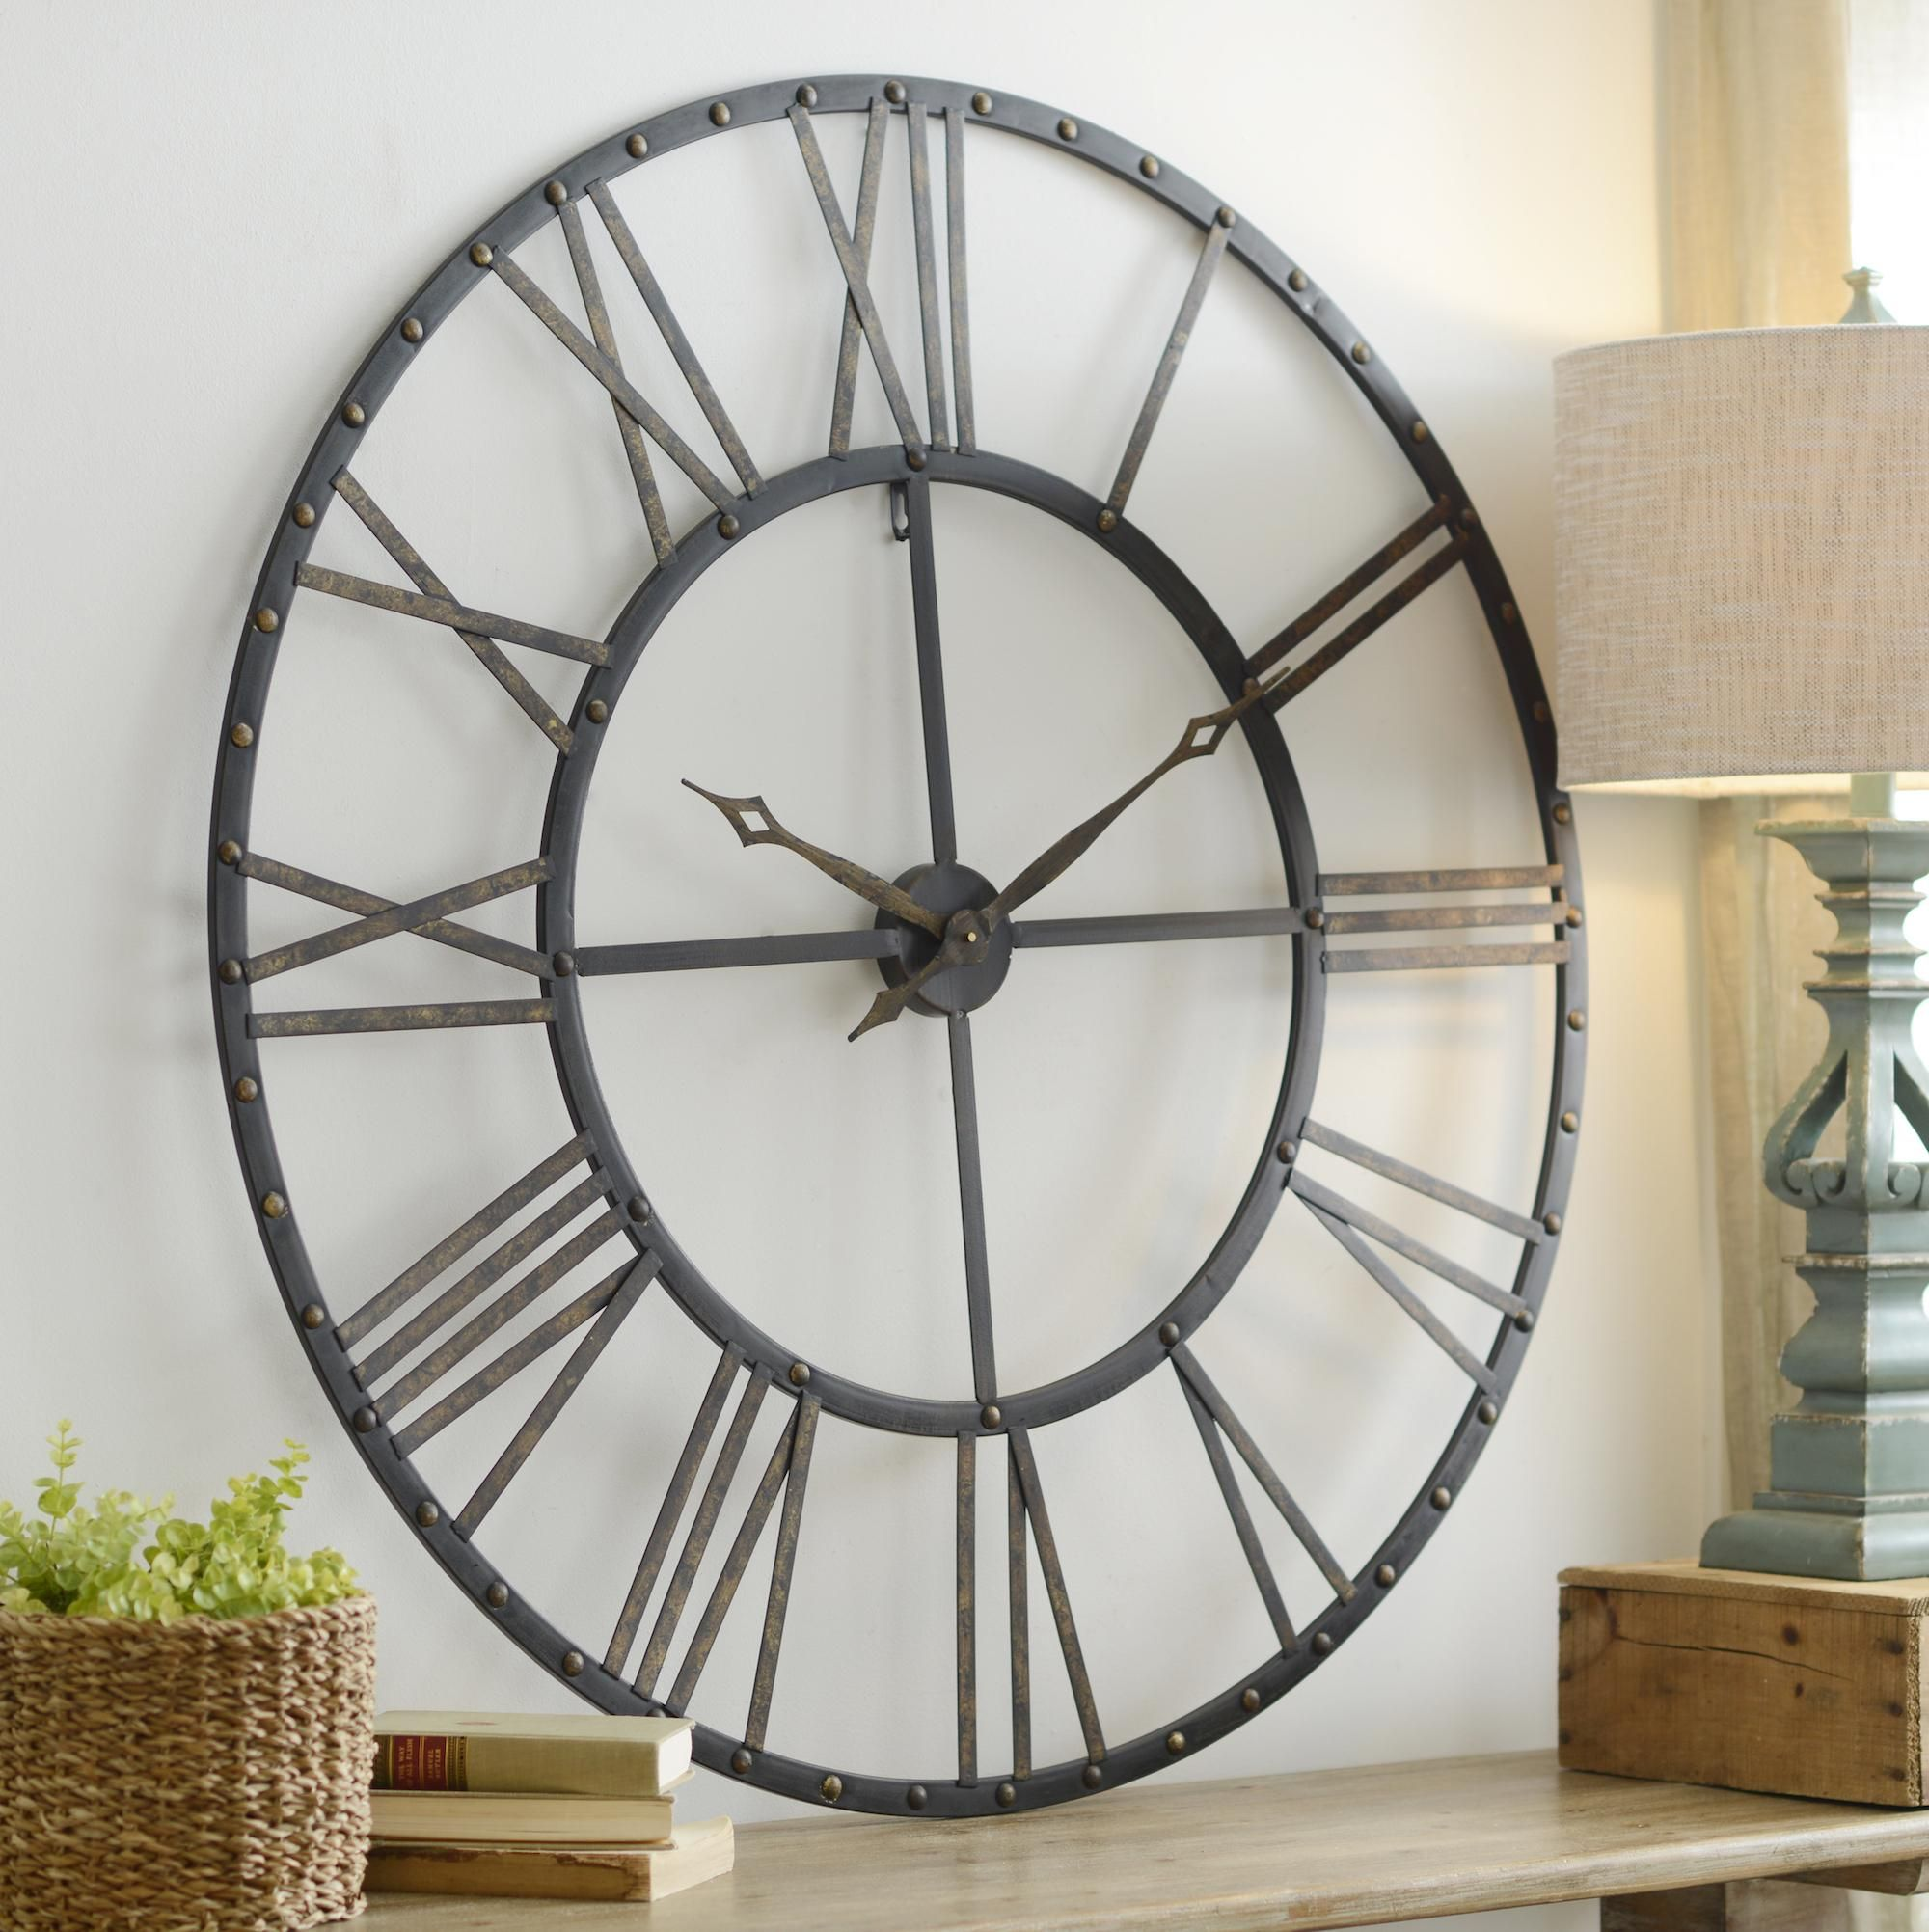 Giant Clock Decor Addison Open Face Clock Blank Walls Open Face And Clocks